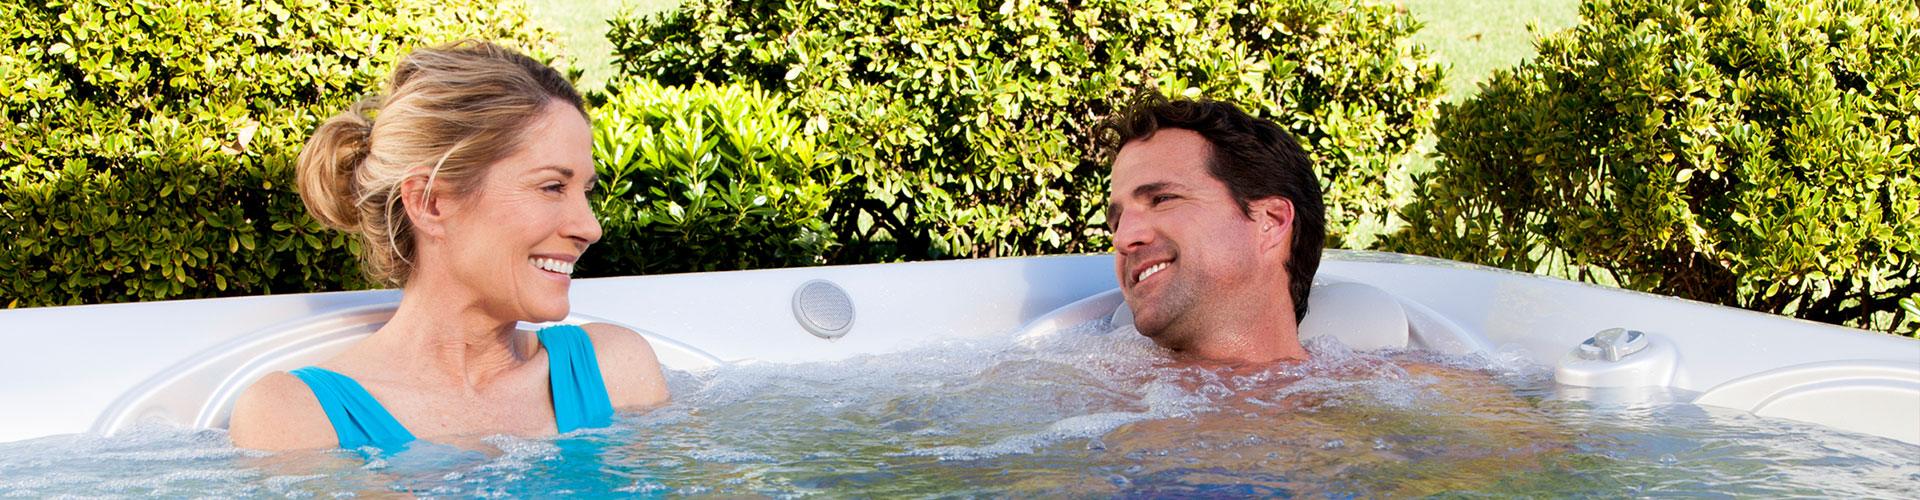 Staying cool in your hot tub